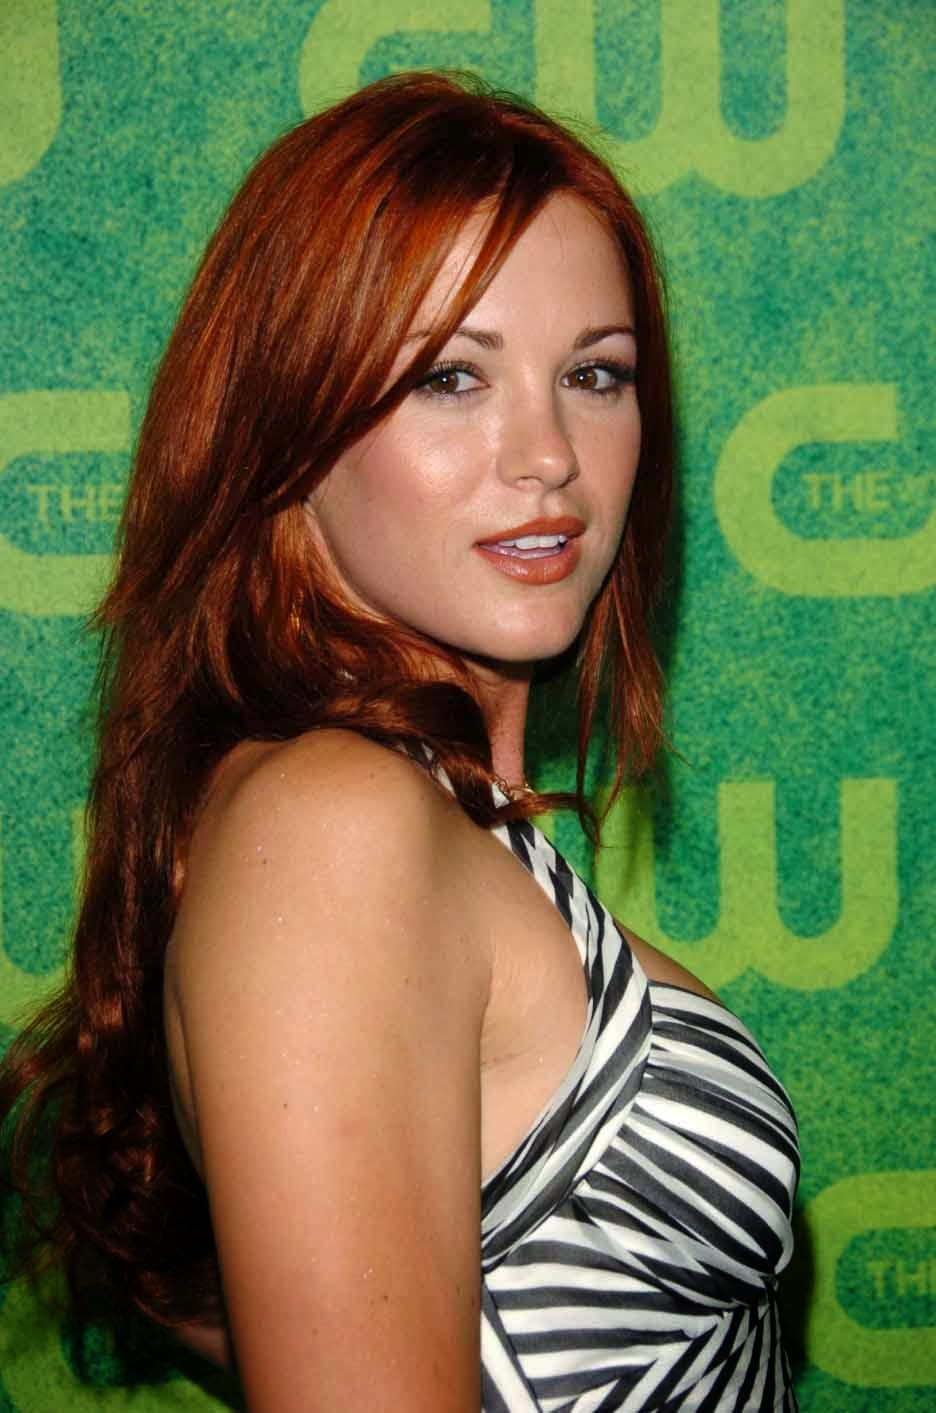 Hd Wallpapers Blog: Danneel Ackles